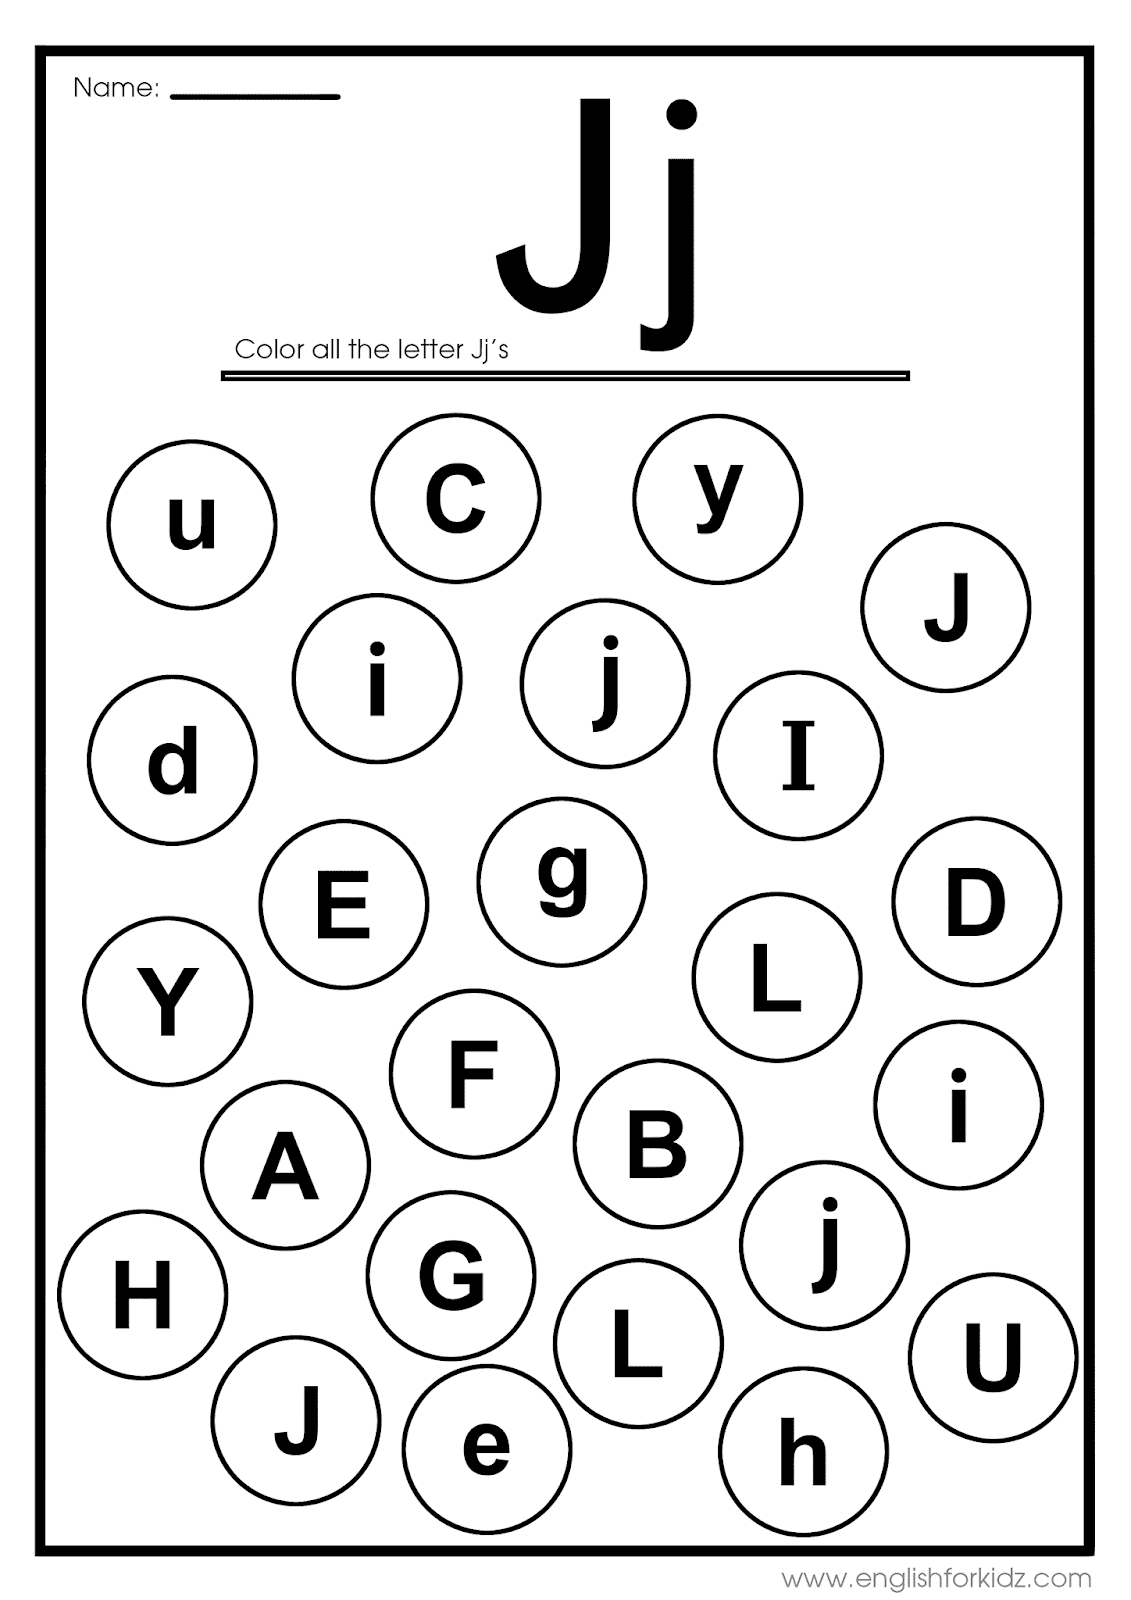 English For Kids Step By Step Letter J Worksheets Flash